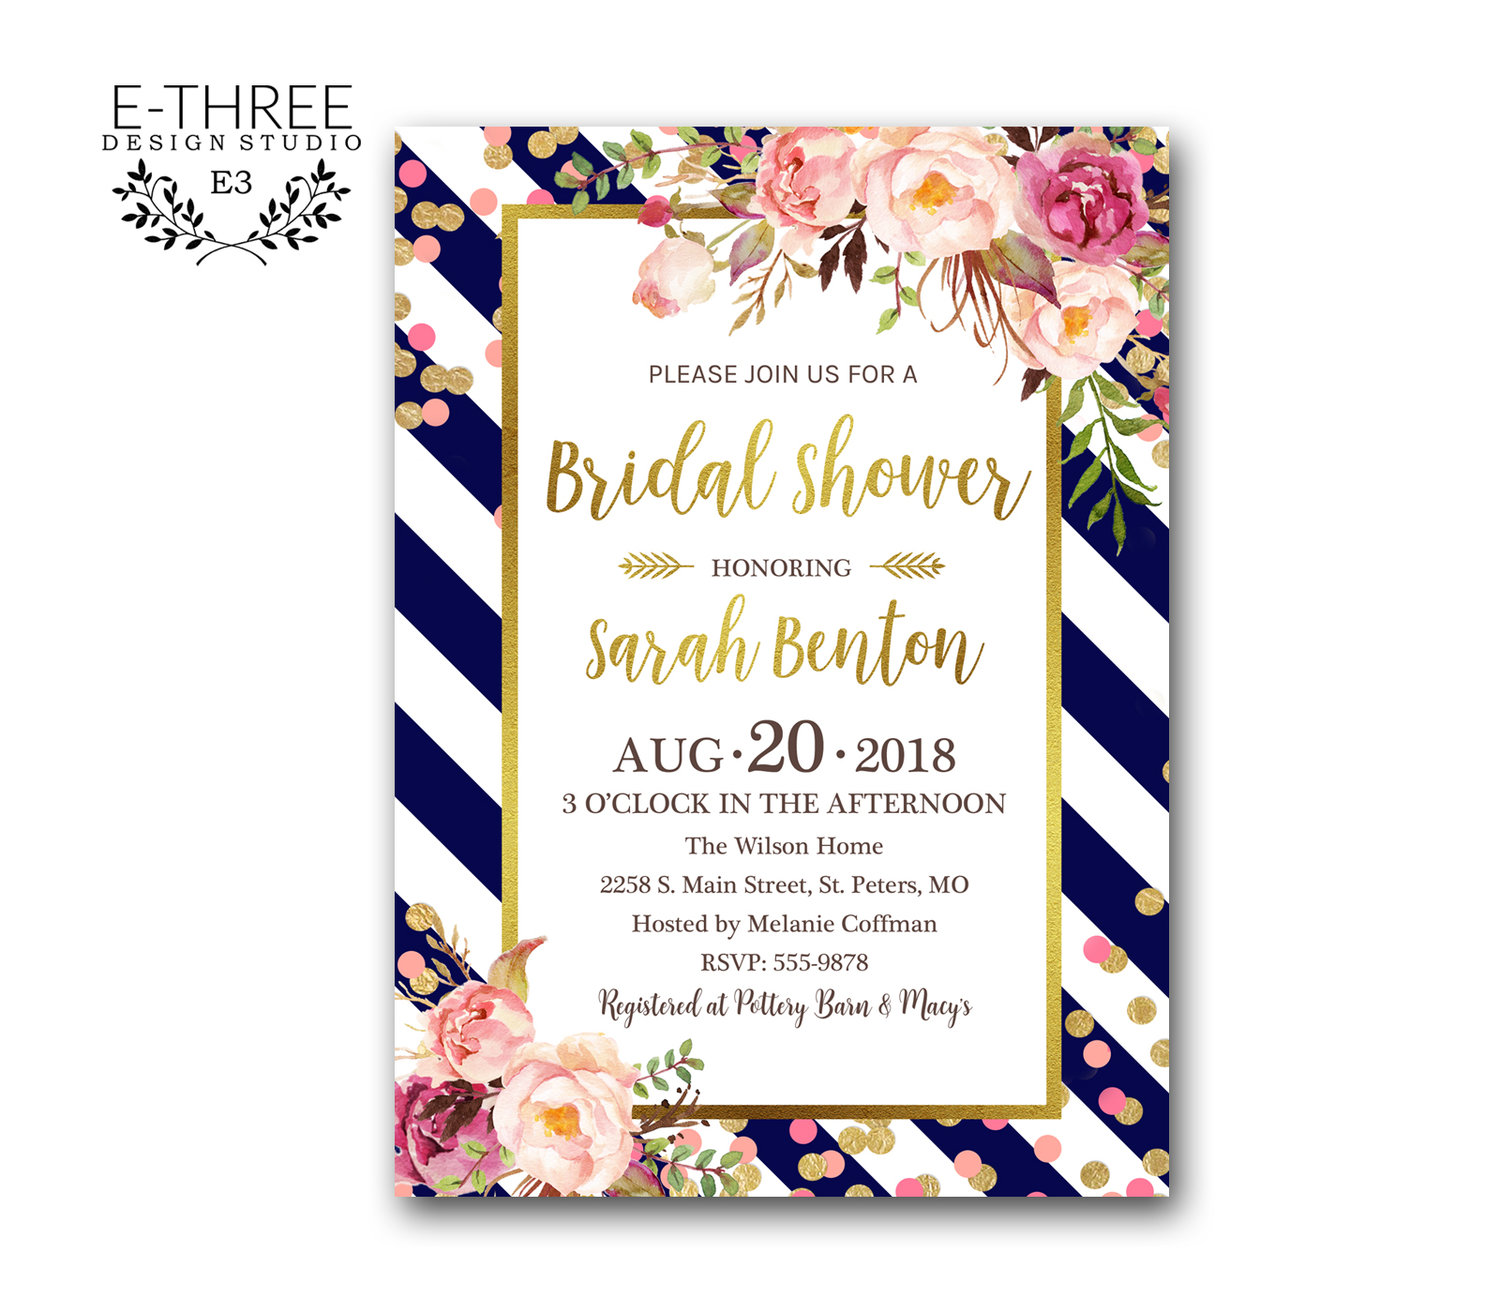 gold confetti bridal shower invitation navy pink and gold wedding shower invitations boho floral bridal invites pink flowers